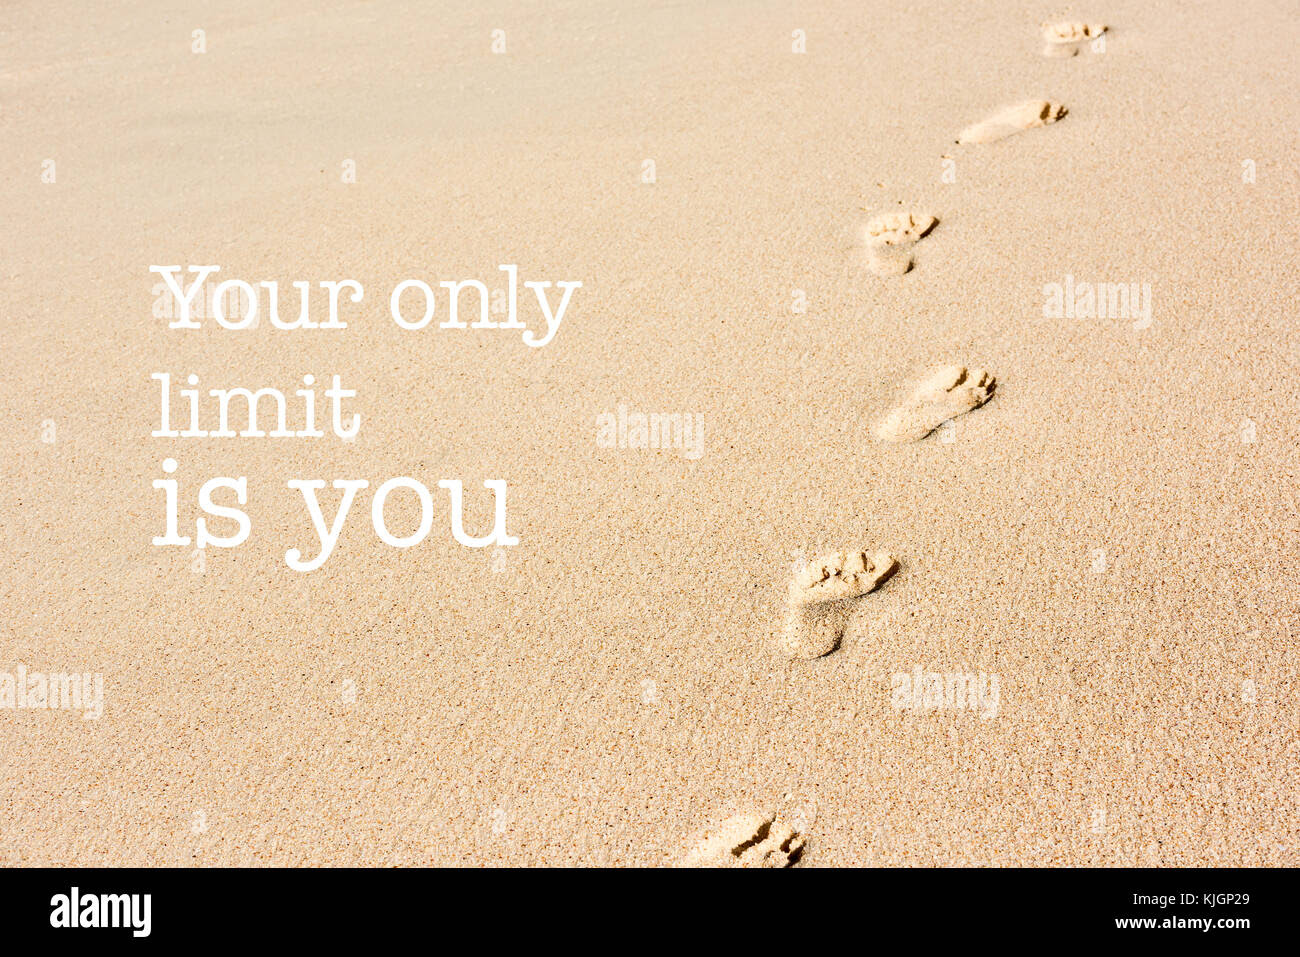 Inspirational Motivation Quote With Phrase Your Only Limit Is You